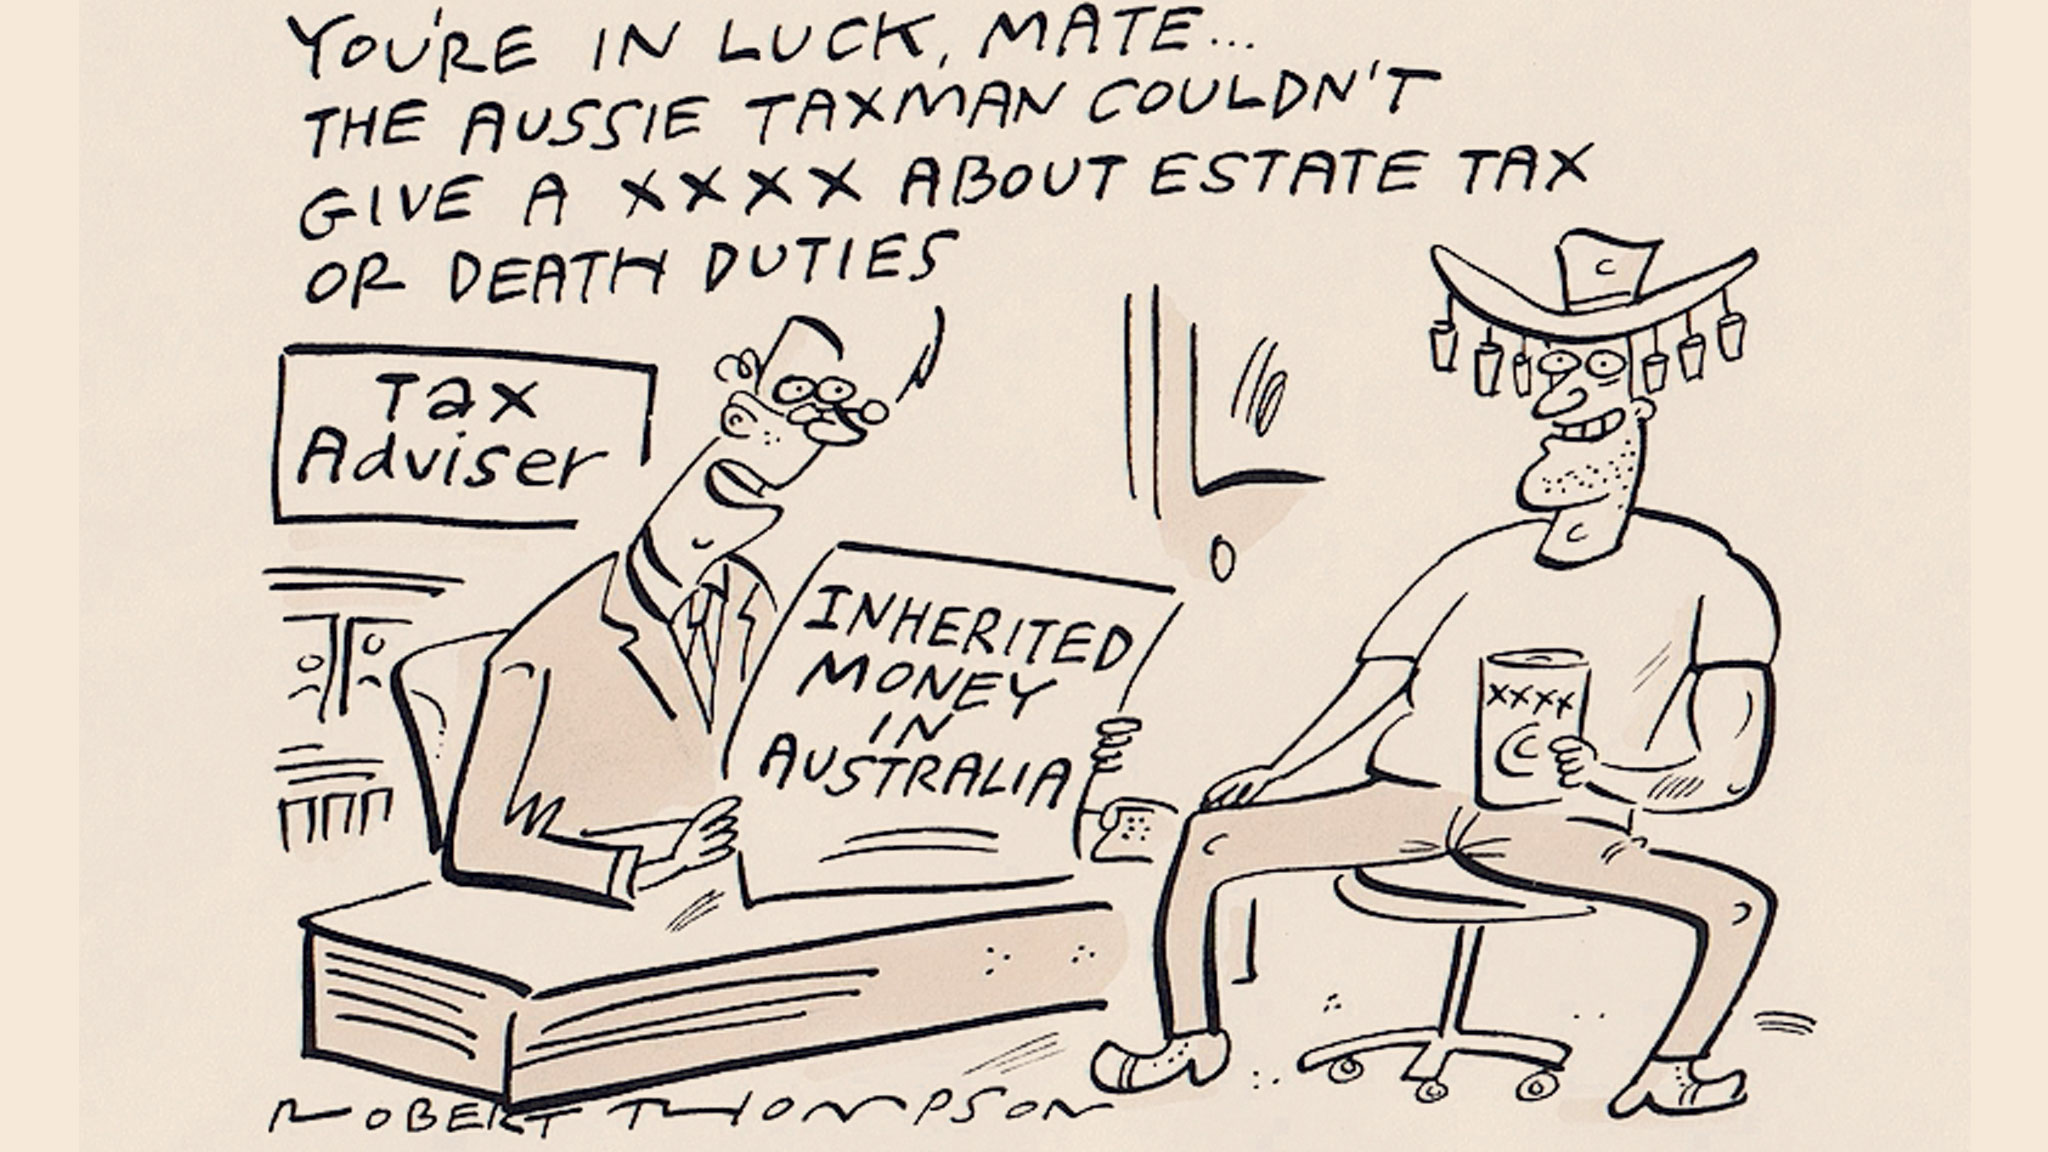 Can I Transfer Overseas Wealth To The Uk Without Incurring Tax Wiring Money China Financial Times